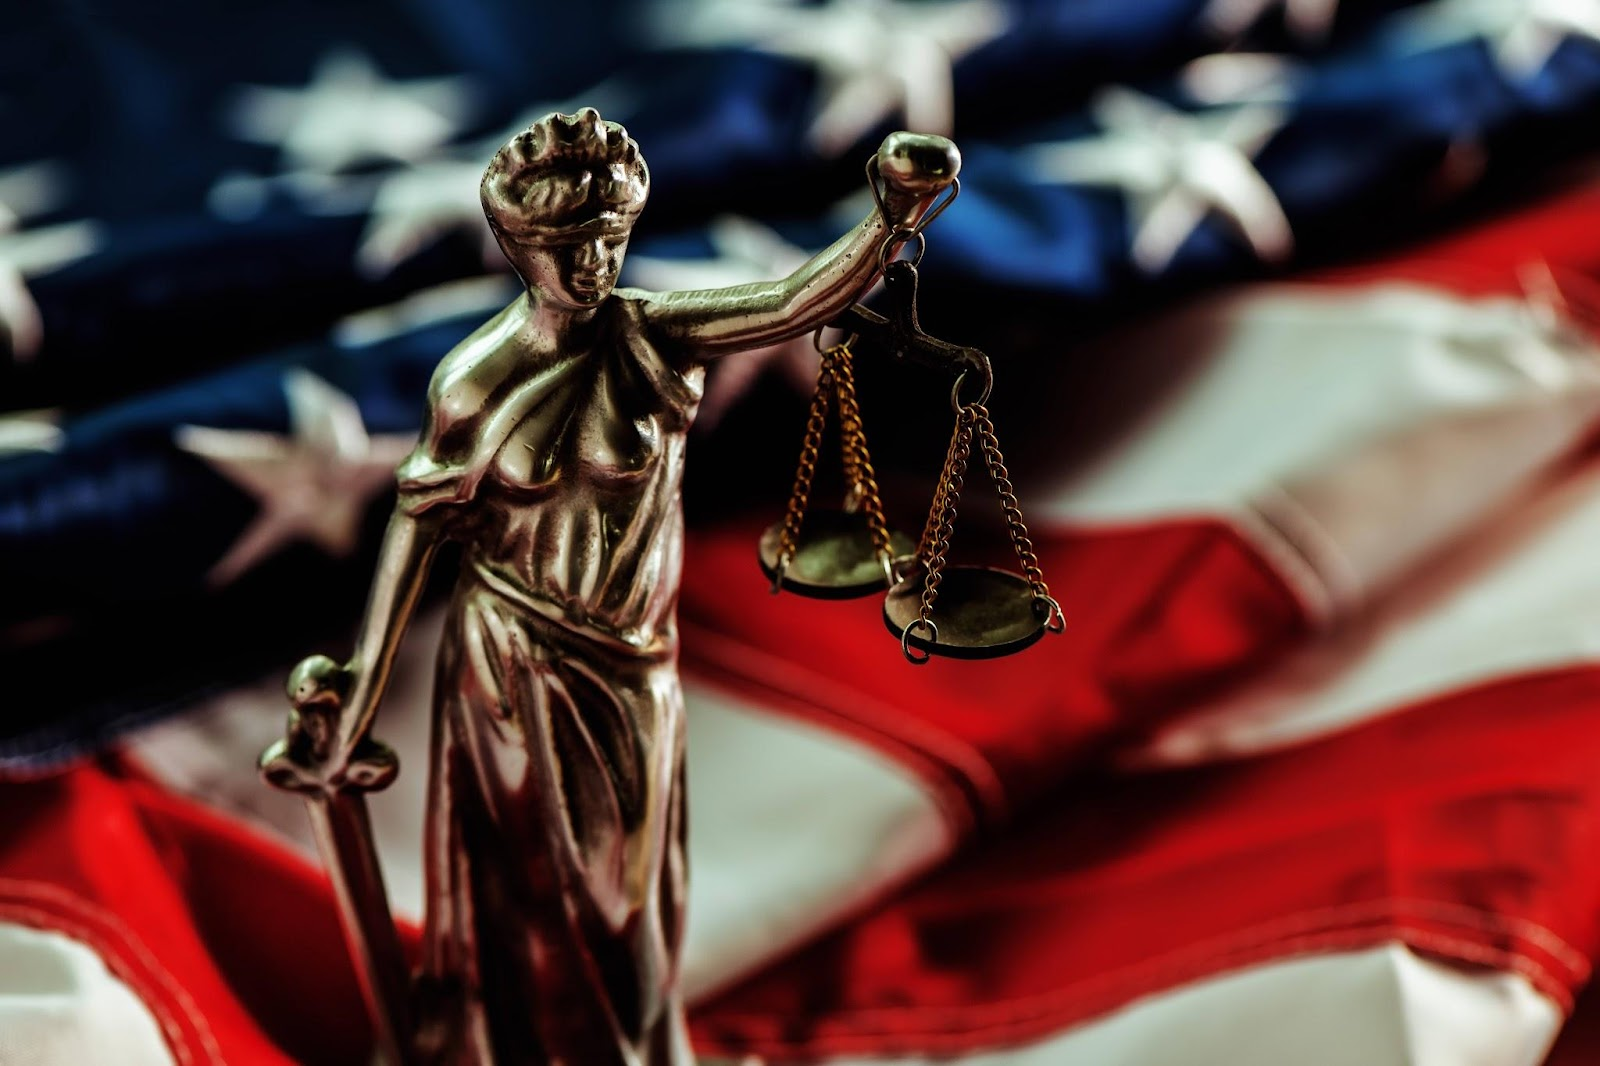 lady of justice in america